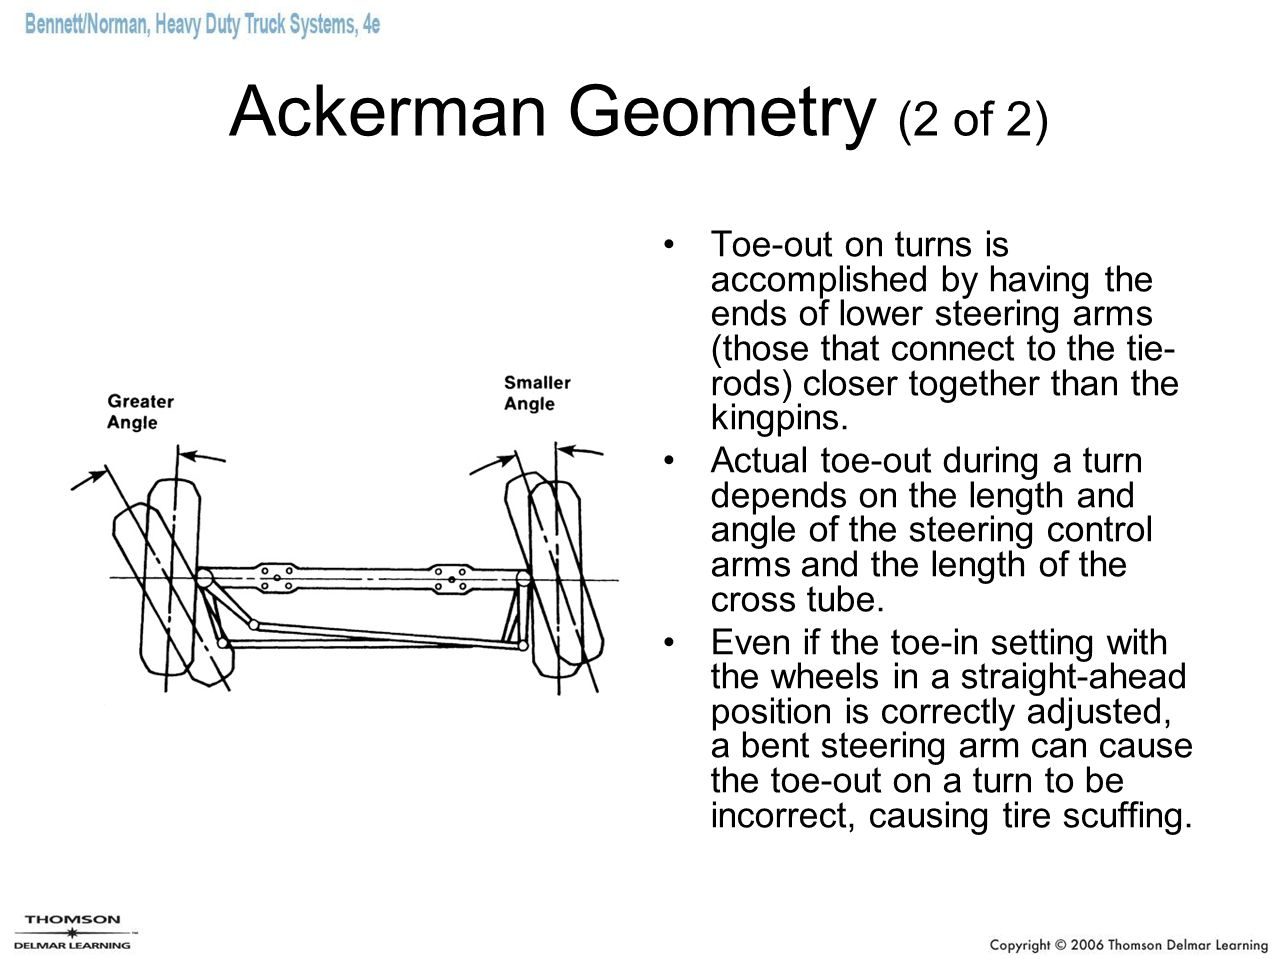 Ackerman Geometry (2 of 2)